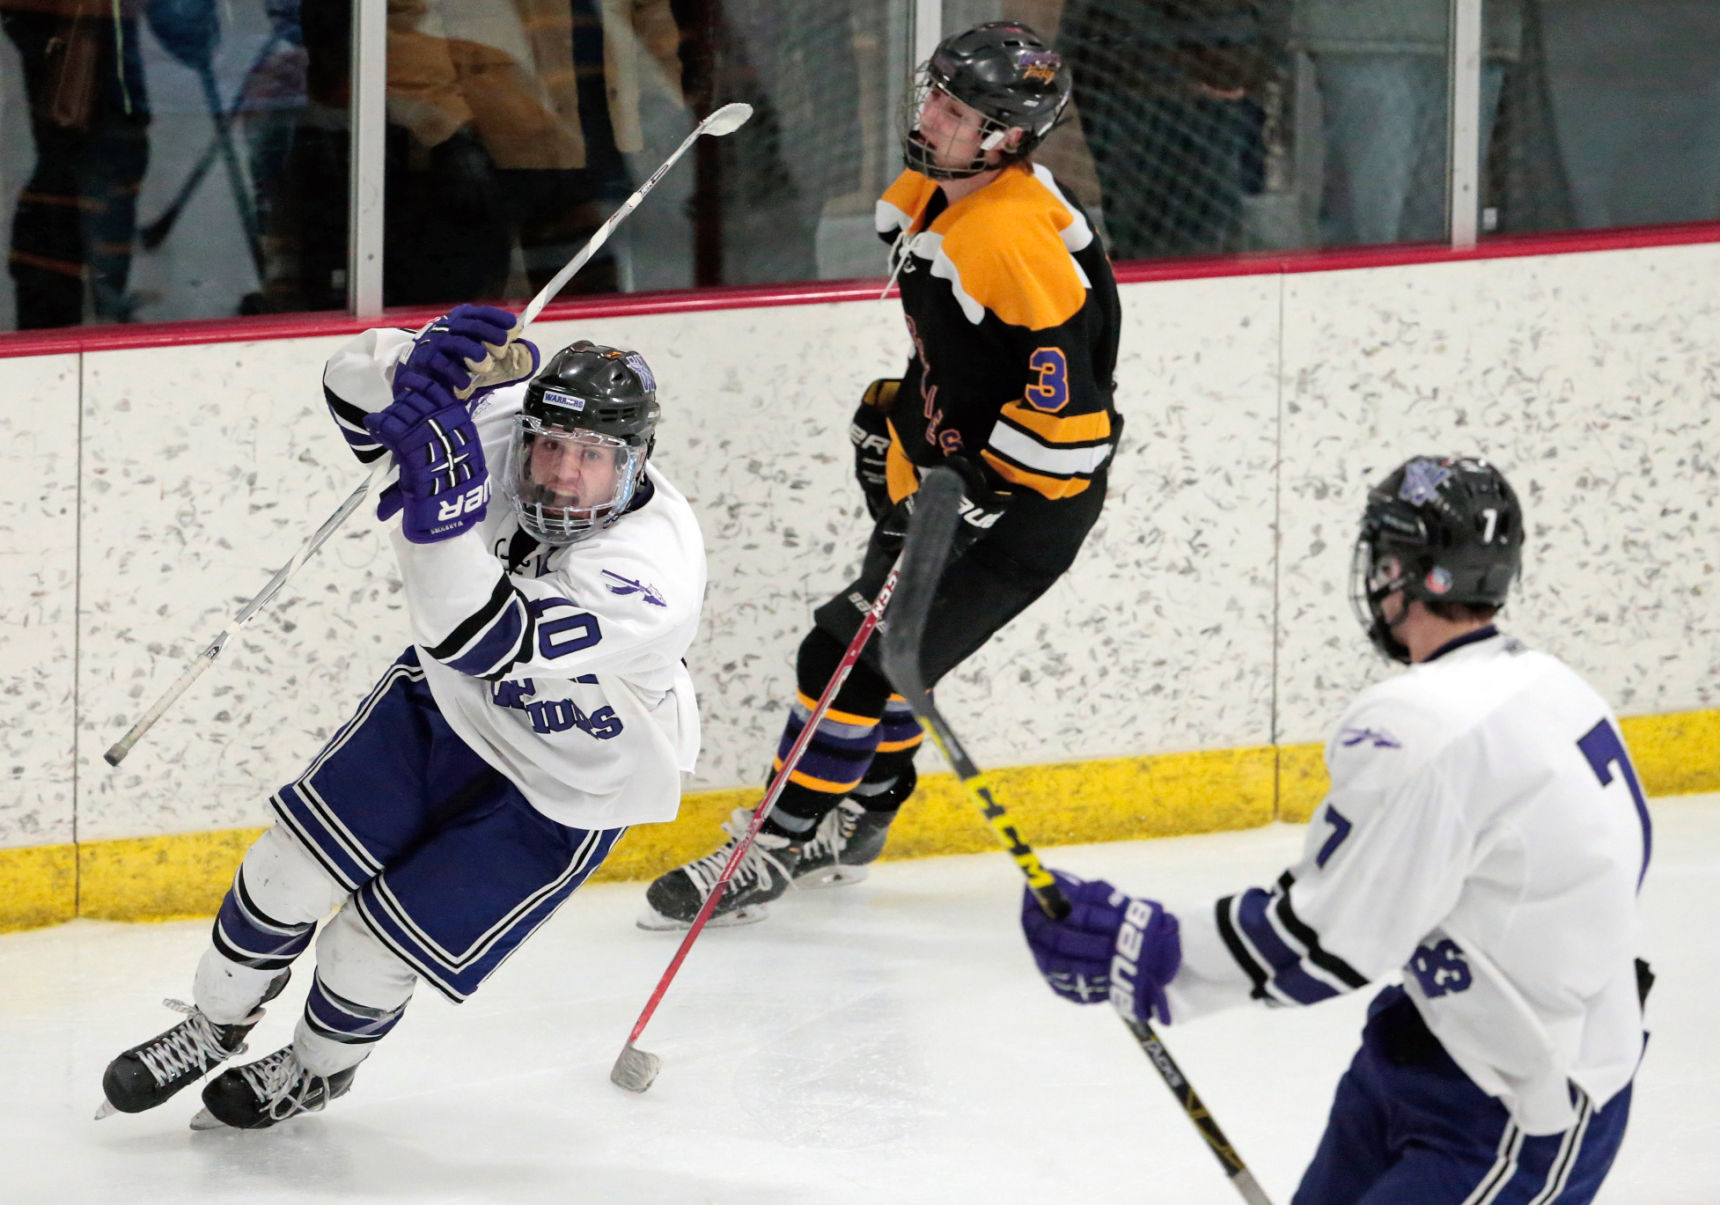 WI H.S.: Series Of Hockey Games In Waunakee Will Aim To Raise Awareness In The Fight Against Cancer